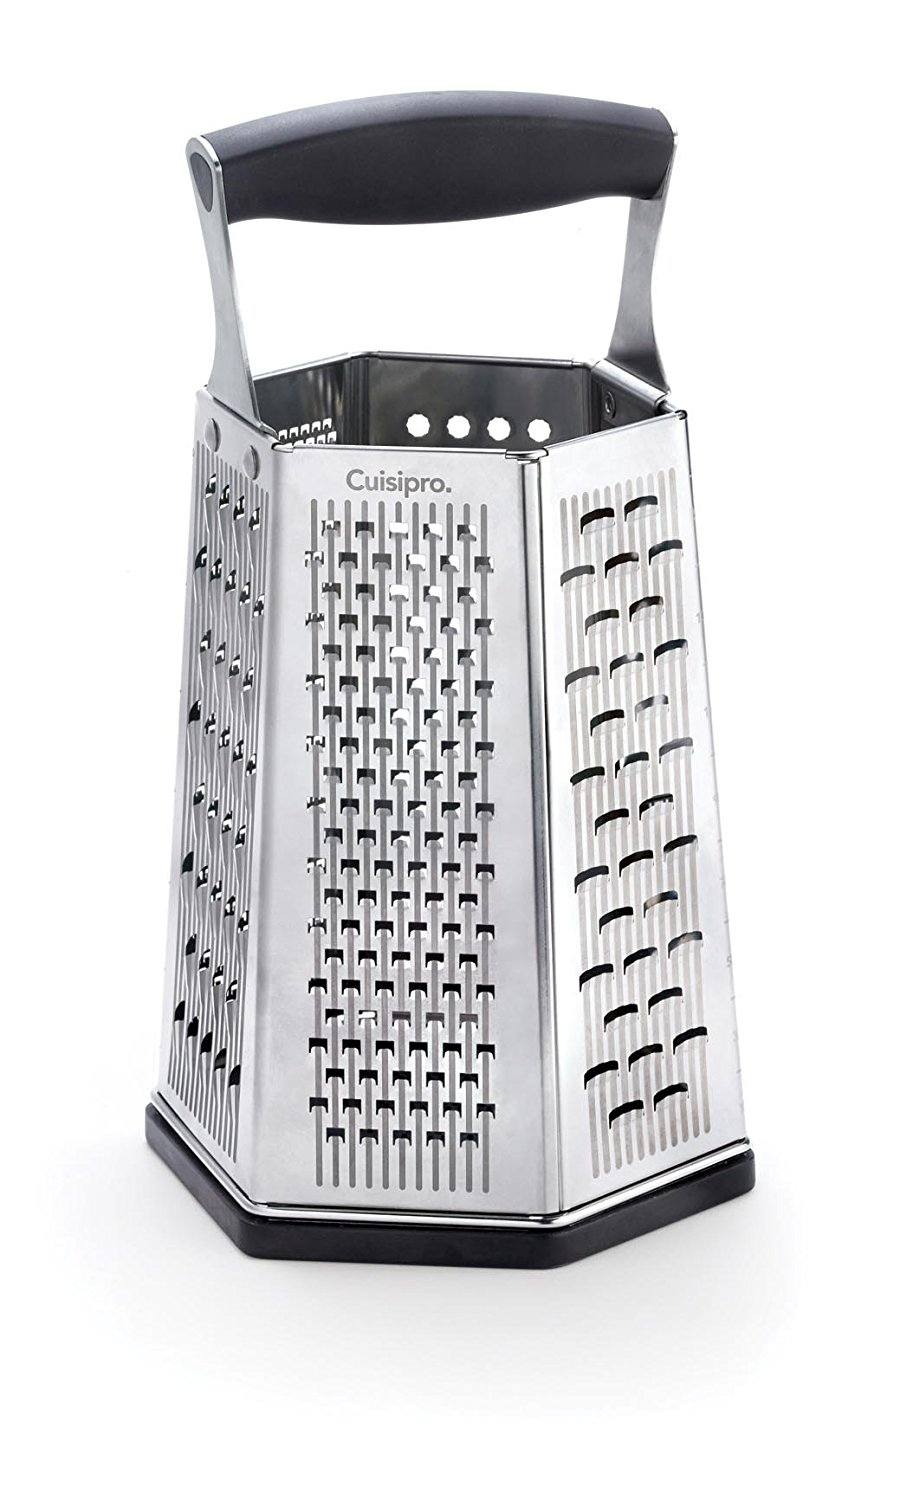 Cuisipro 6-Sided Box Grater